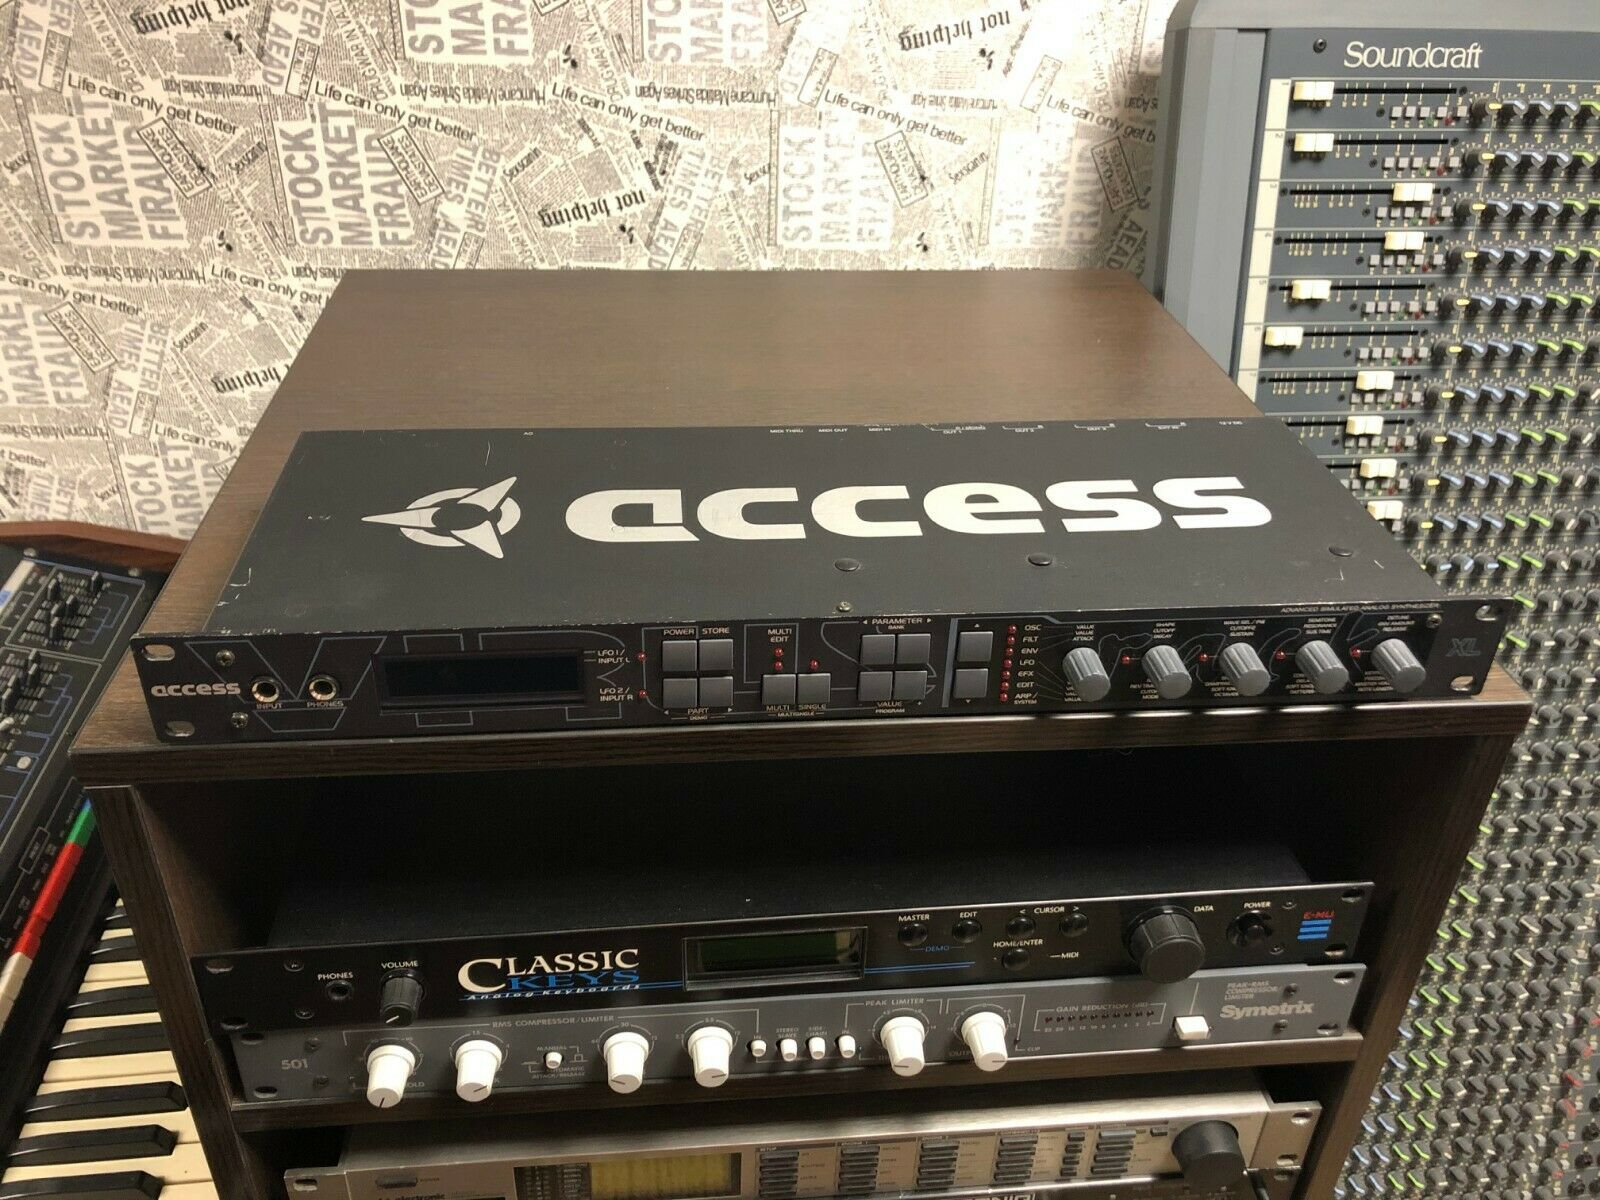 Access Virus XL Virus C rare rack synth